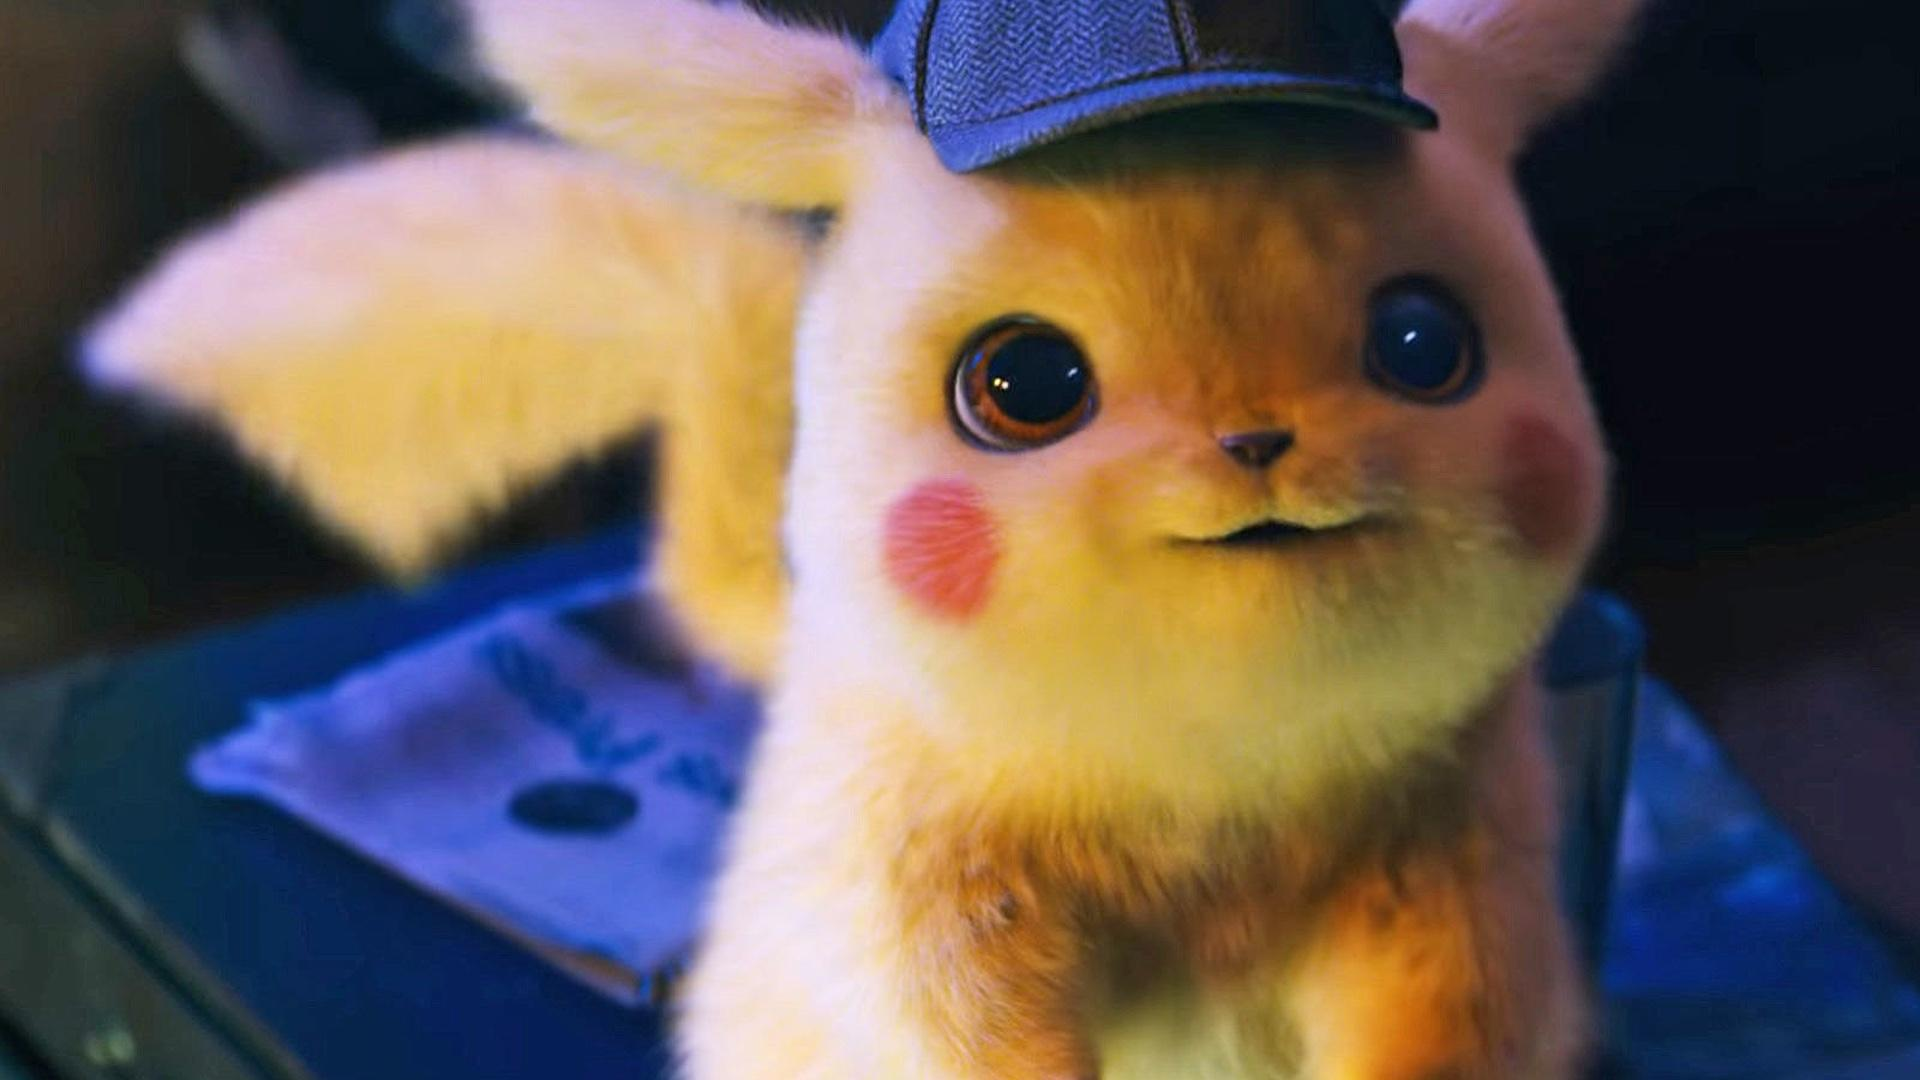 The DETECTIVE PIKACHU Trailer Gets a Funny Remix With the Voice of